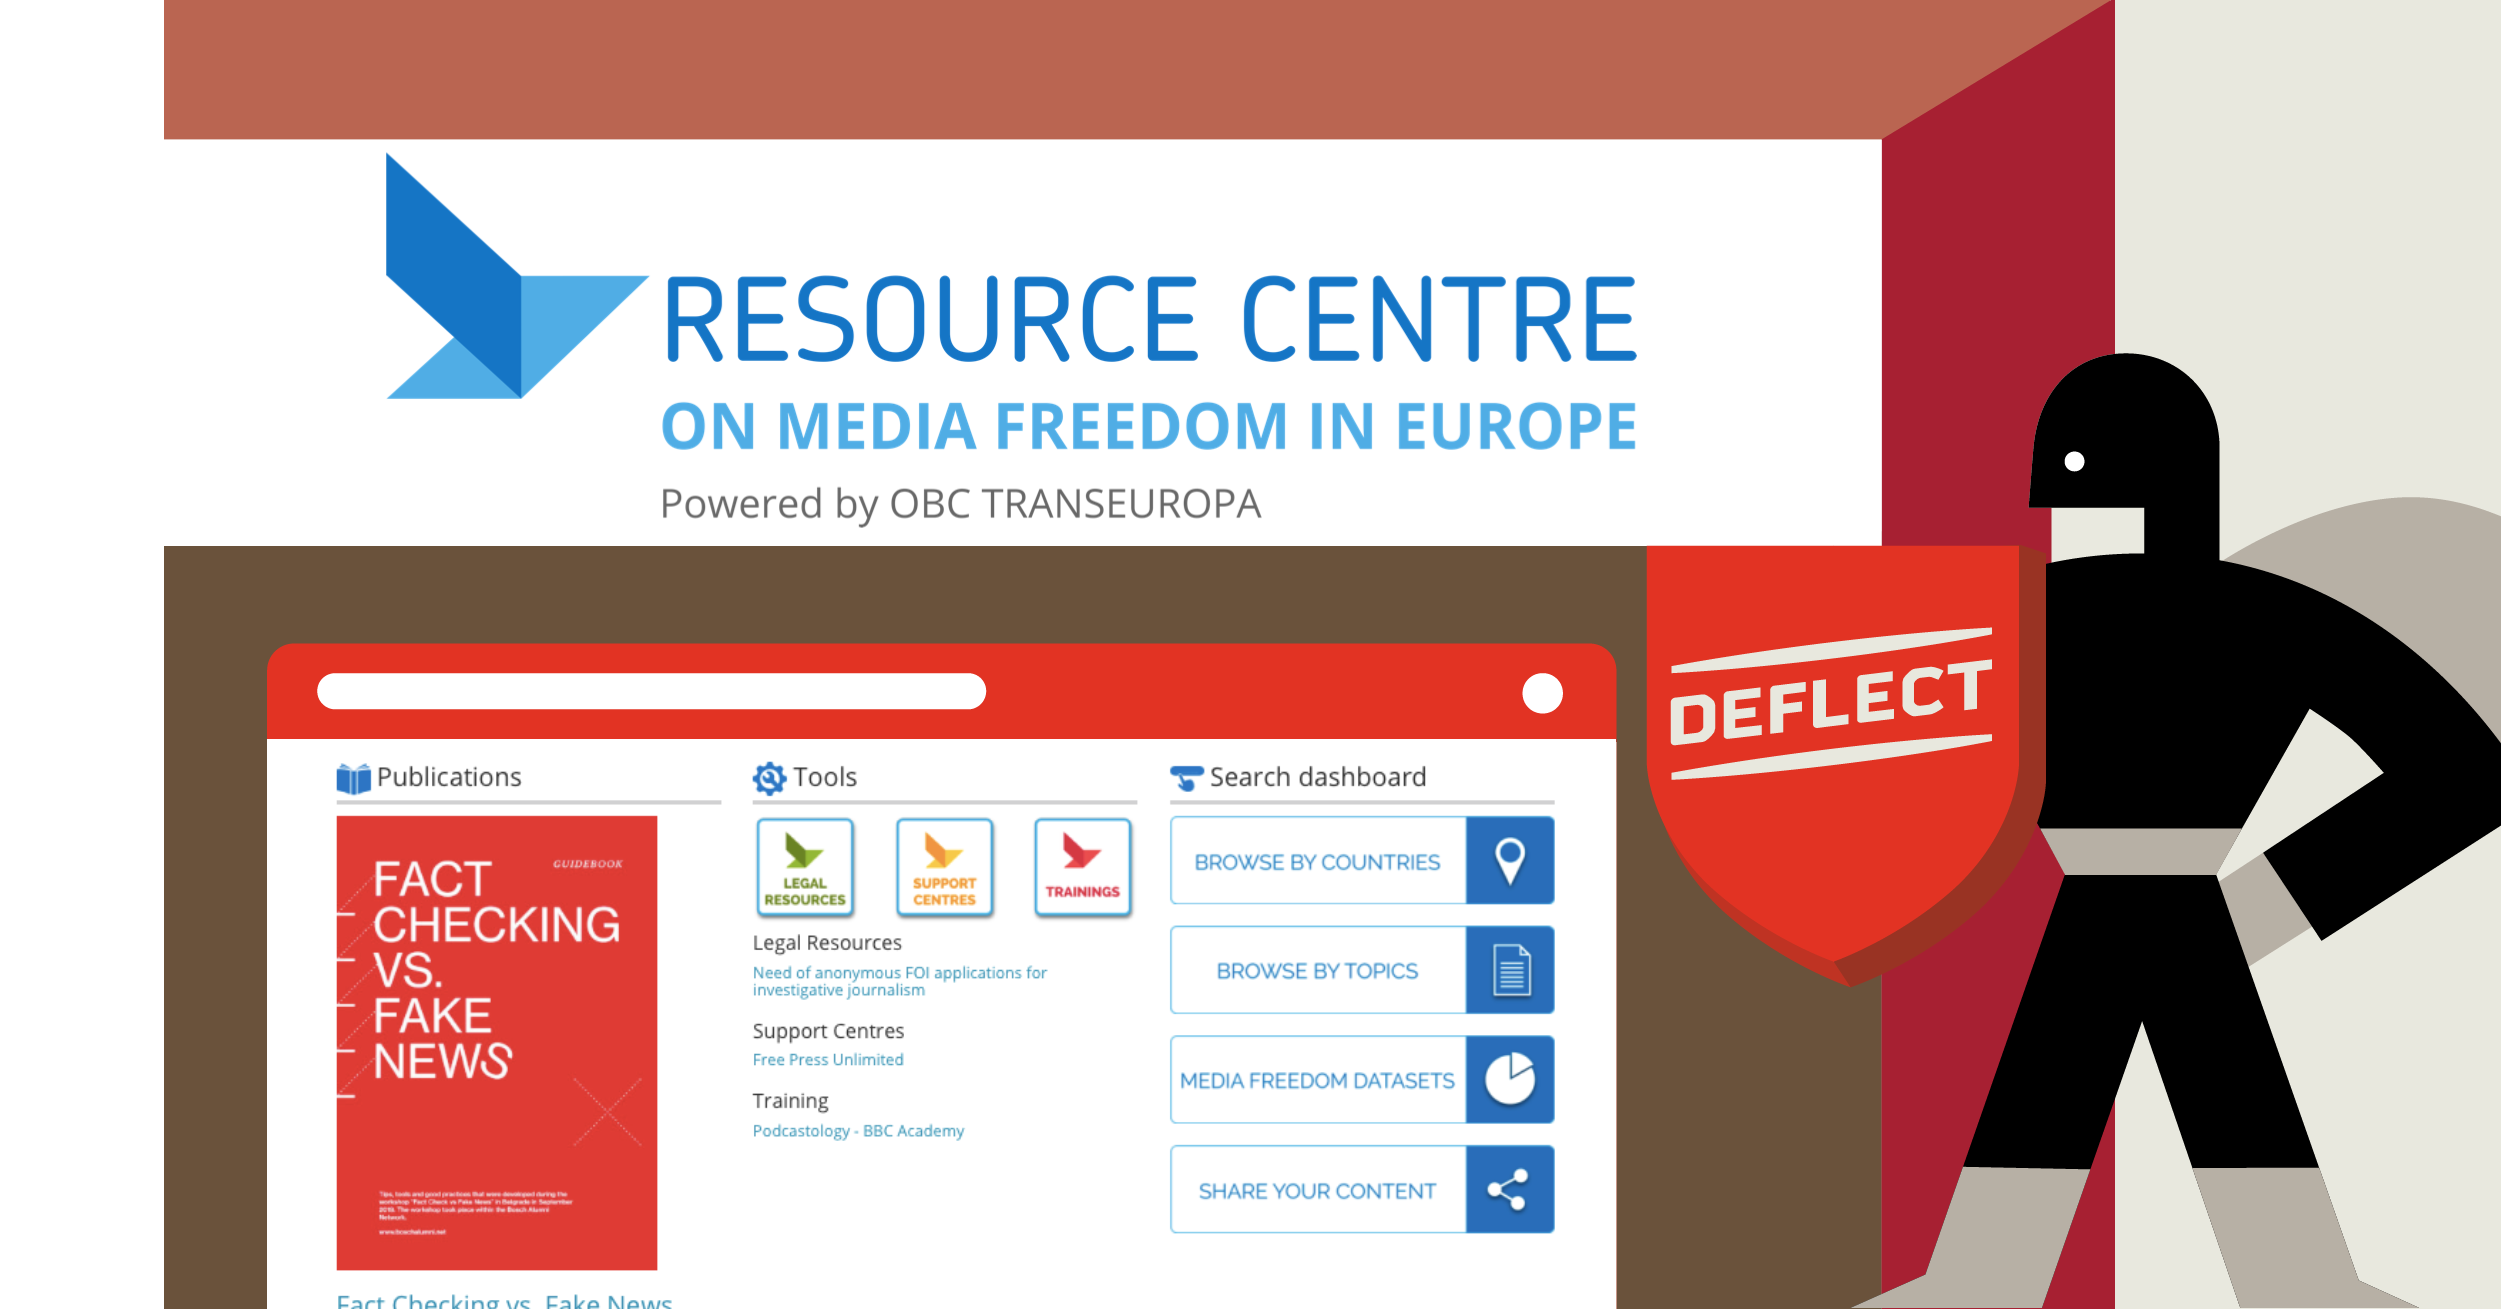 Resource Center on Media Freedom in Europe